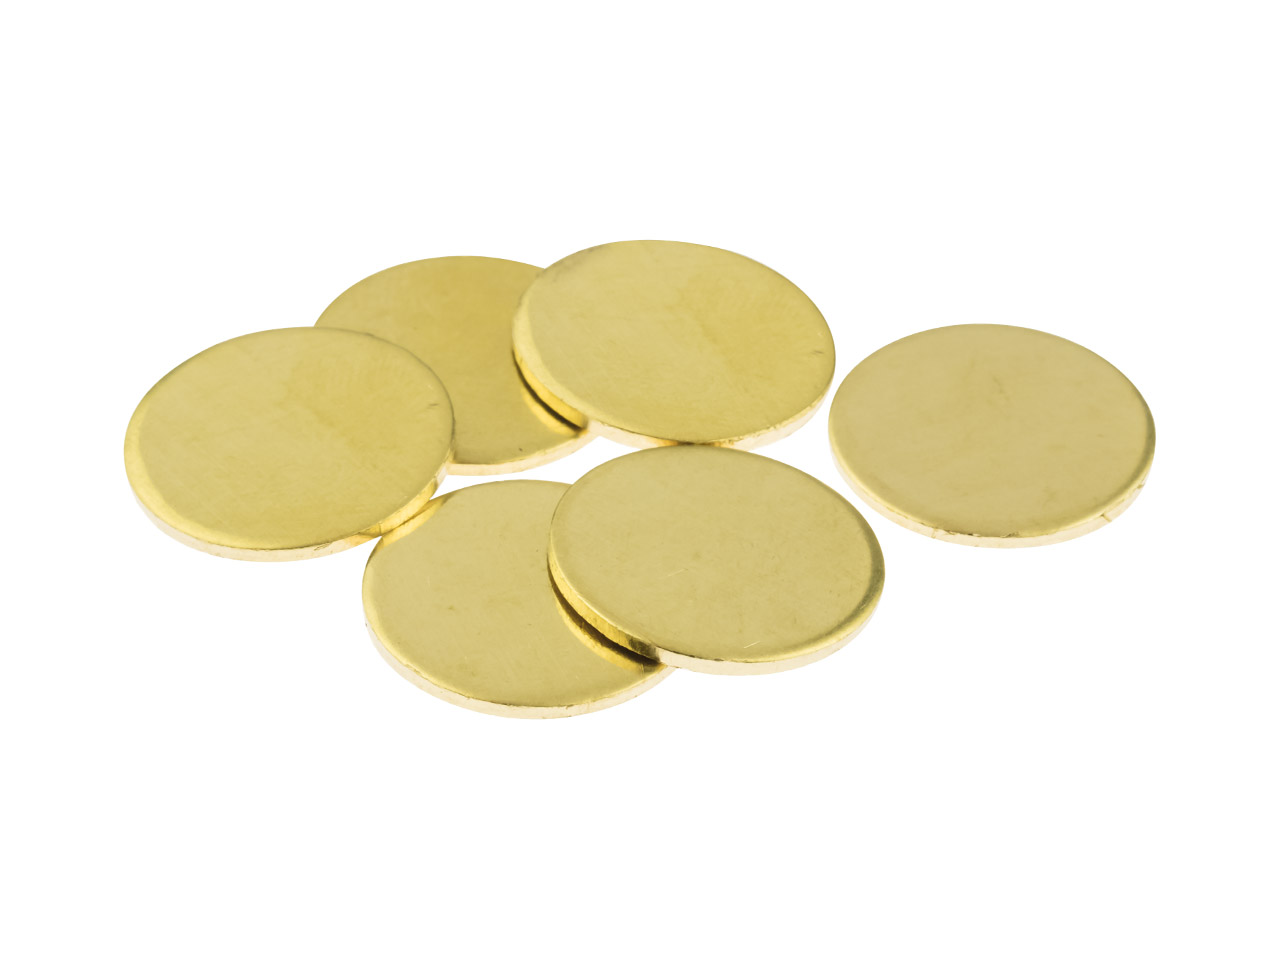 Brass Discs Round Pack of 6, 15mm